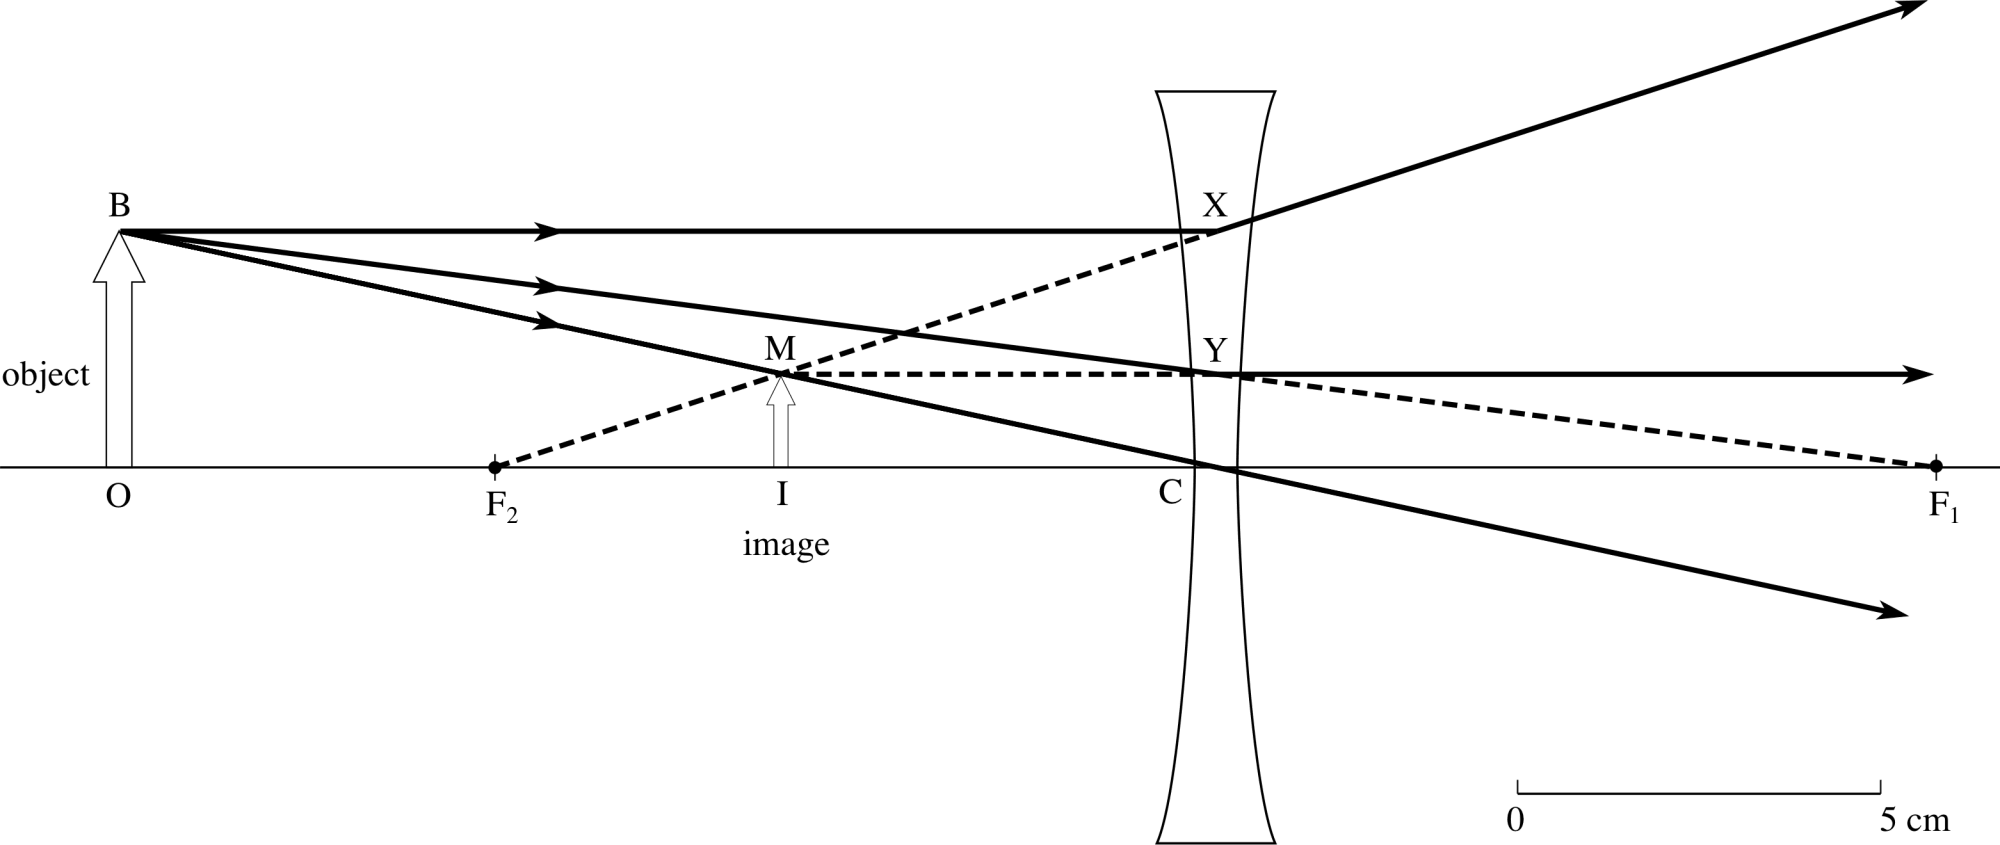 hight resolution of example 2 an image formed by a concave lens figure 20 ray diagram